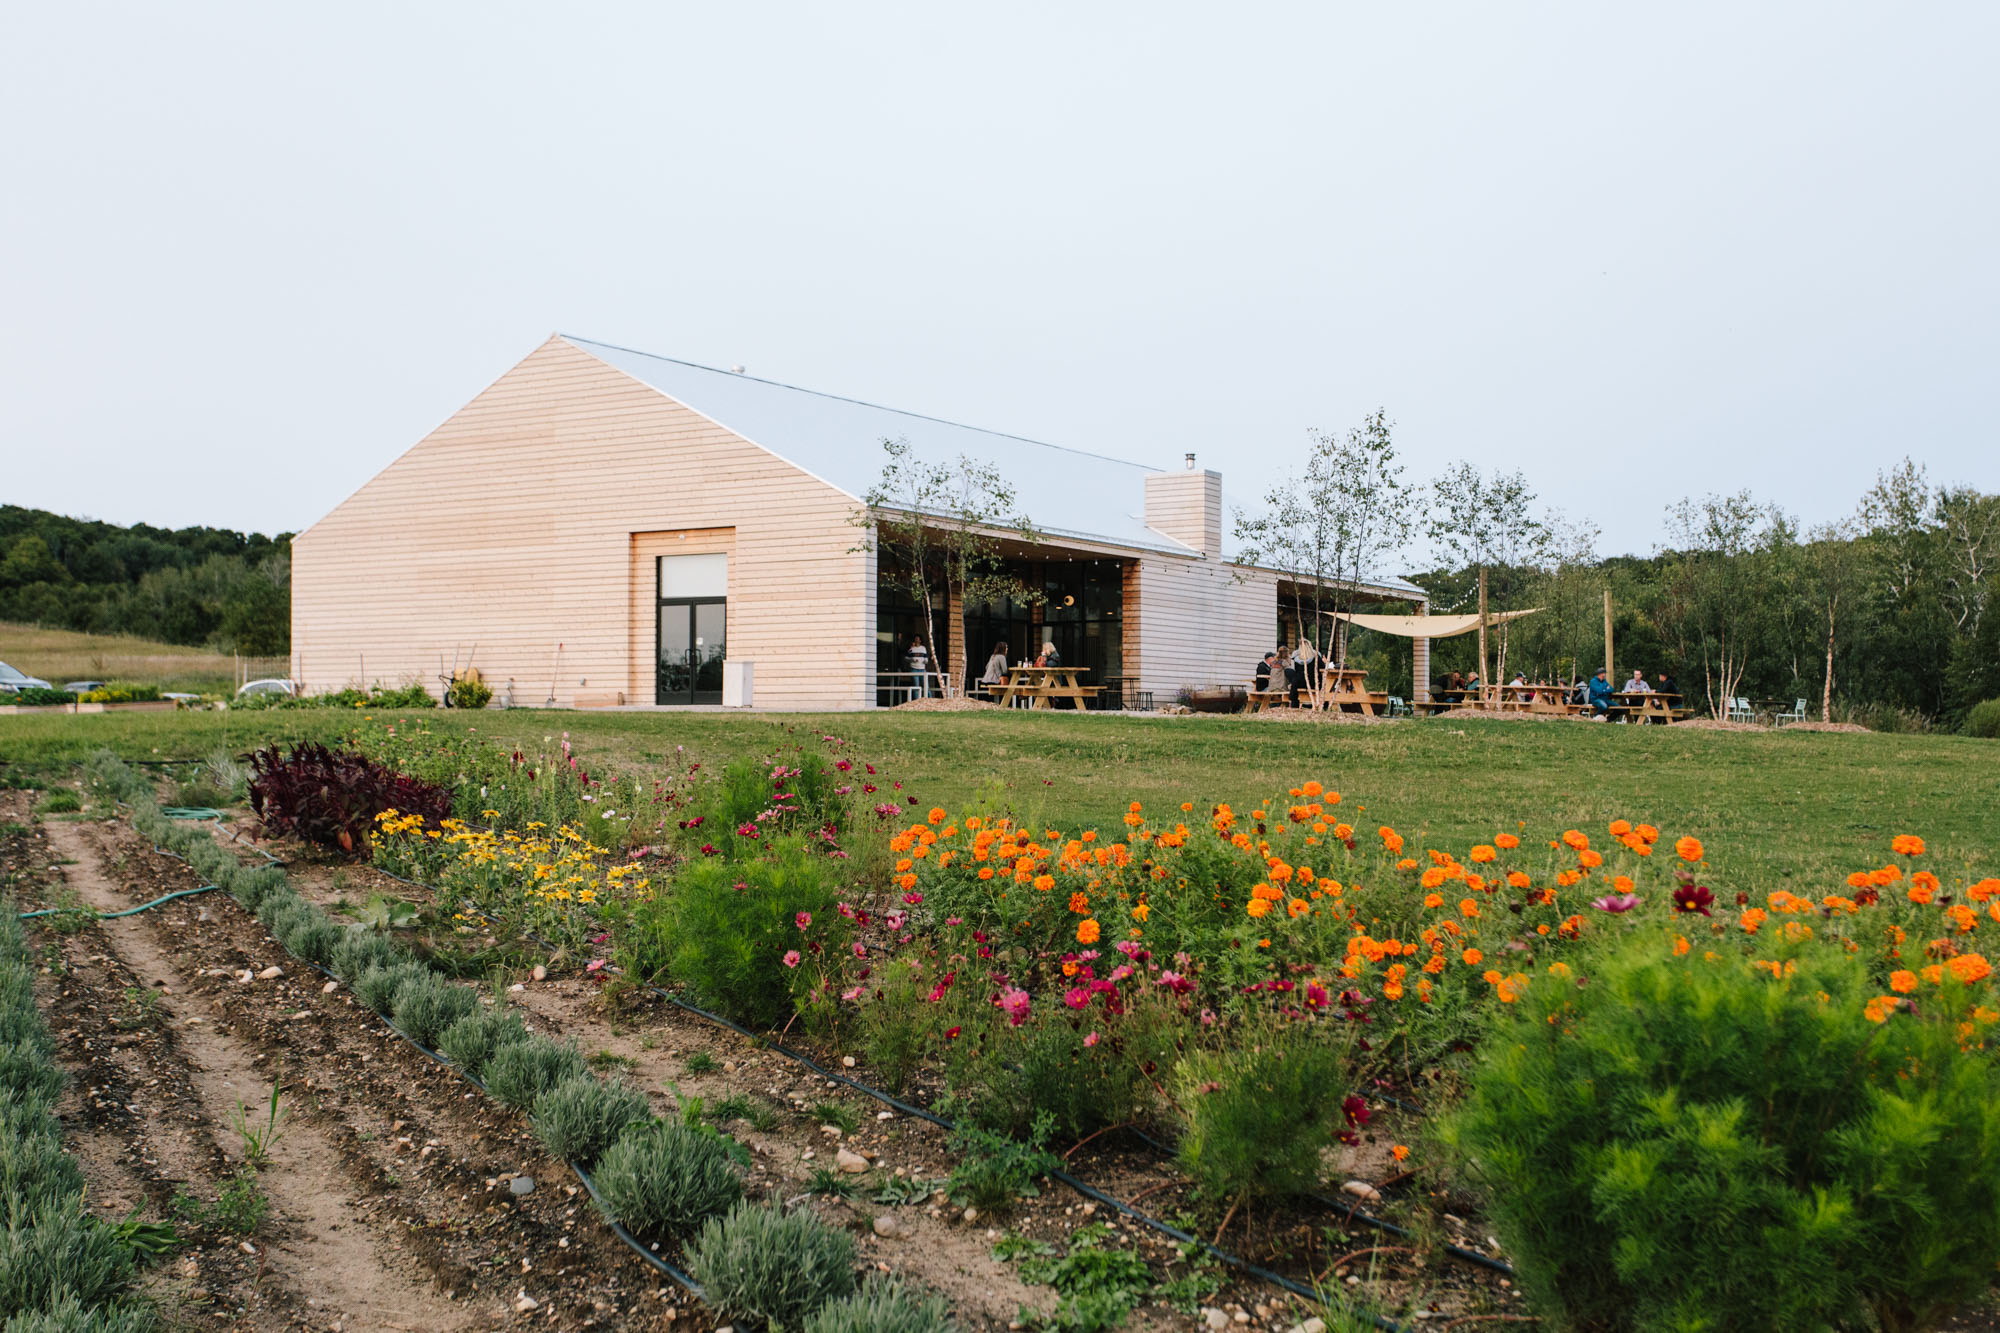 A farm house with wood sides and a metal roof surrounded by a beautiful meadow with flowers.